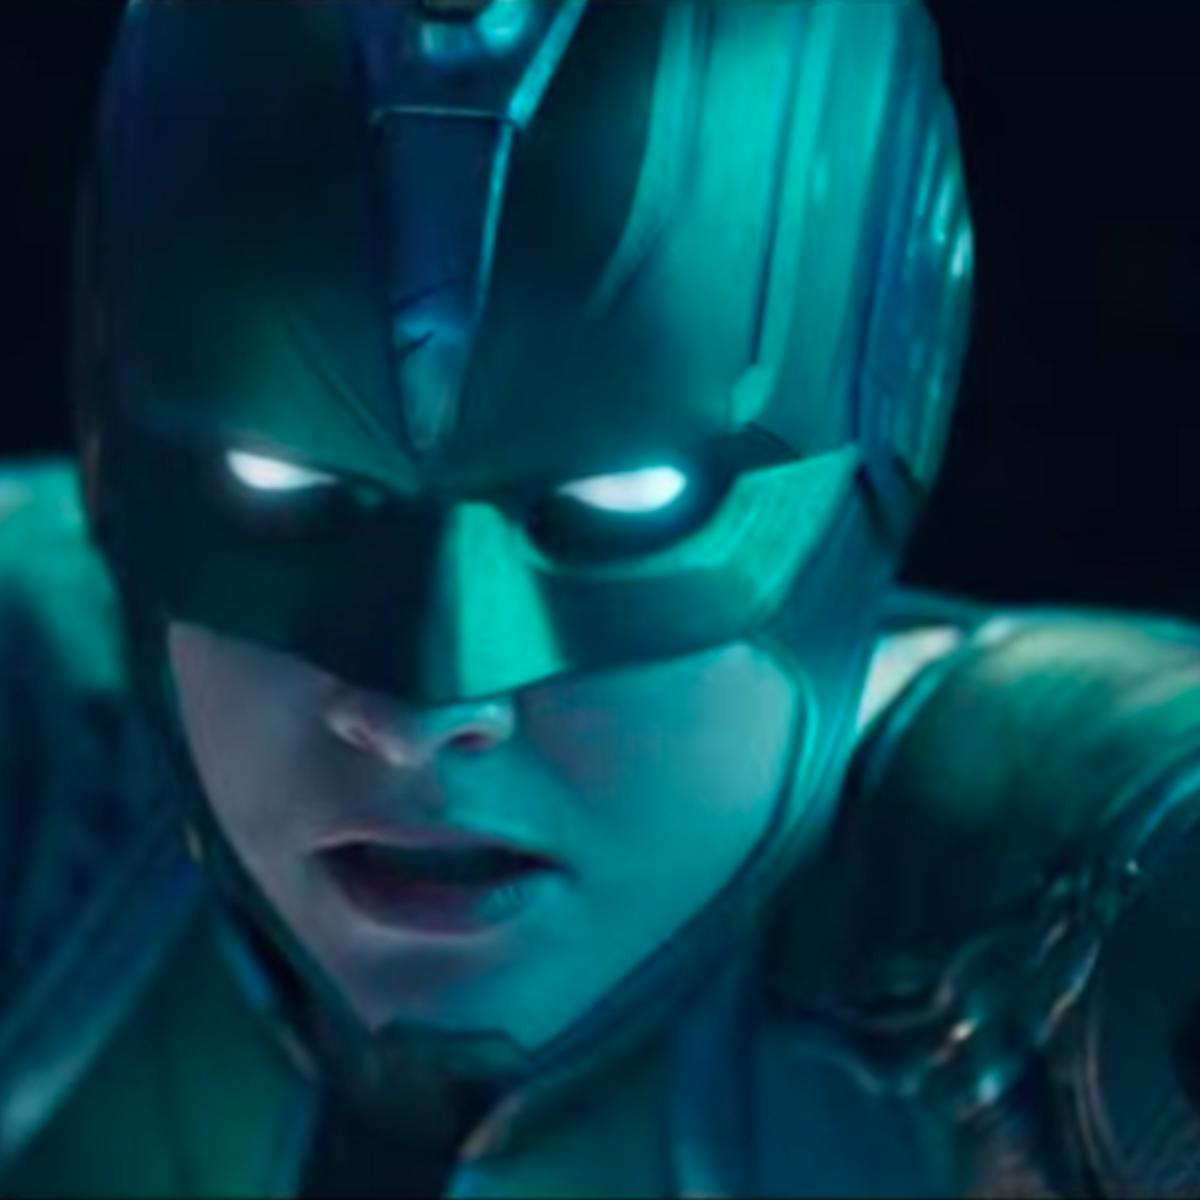 'Captain Marvel,' Marvel's first female led superhero film, debuts its first trailer